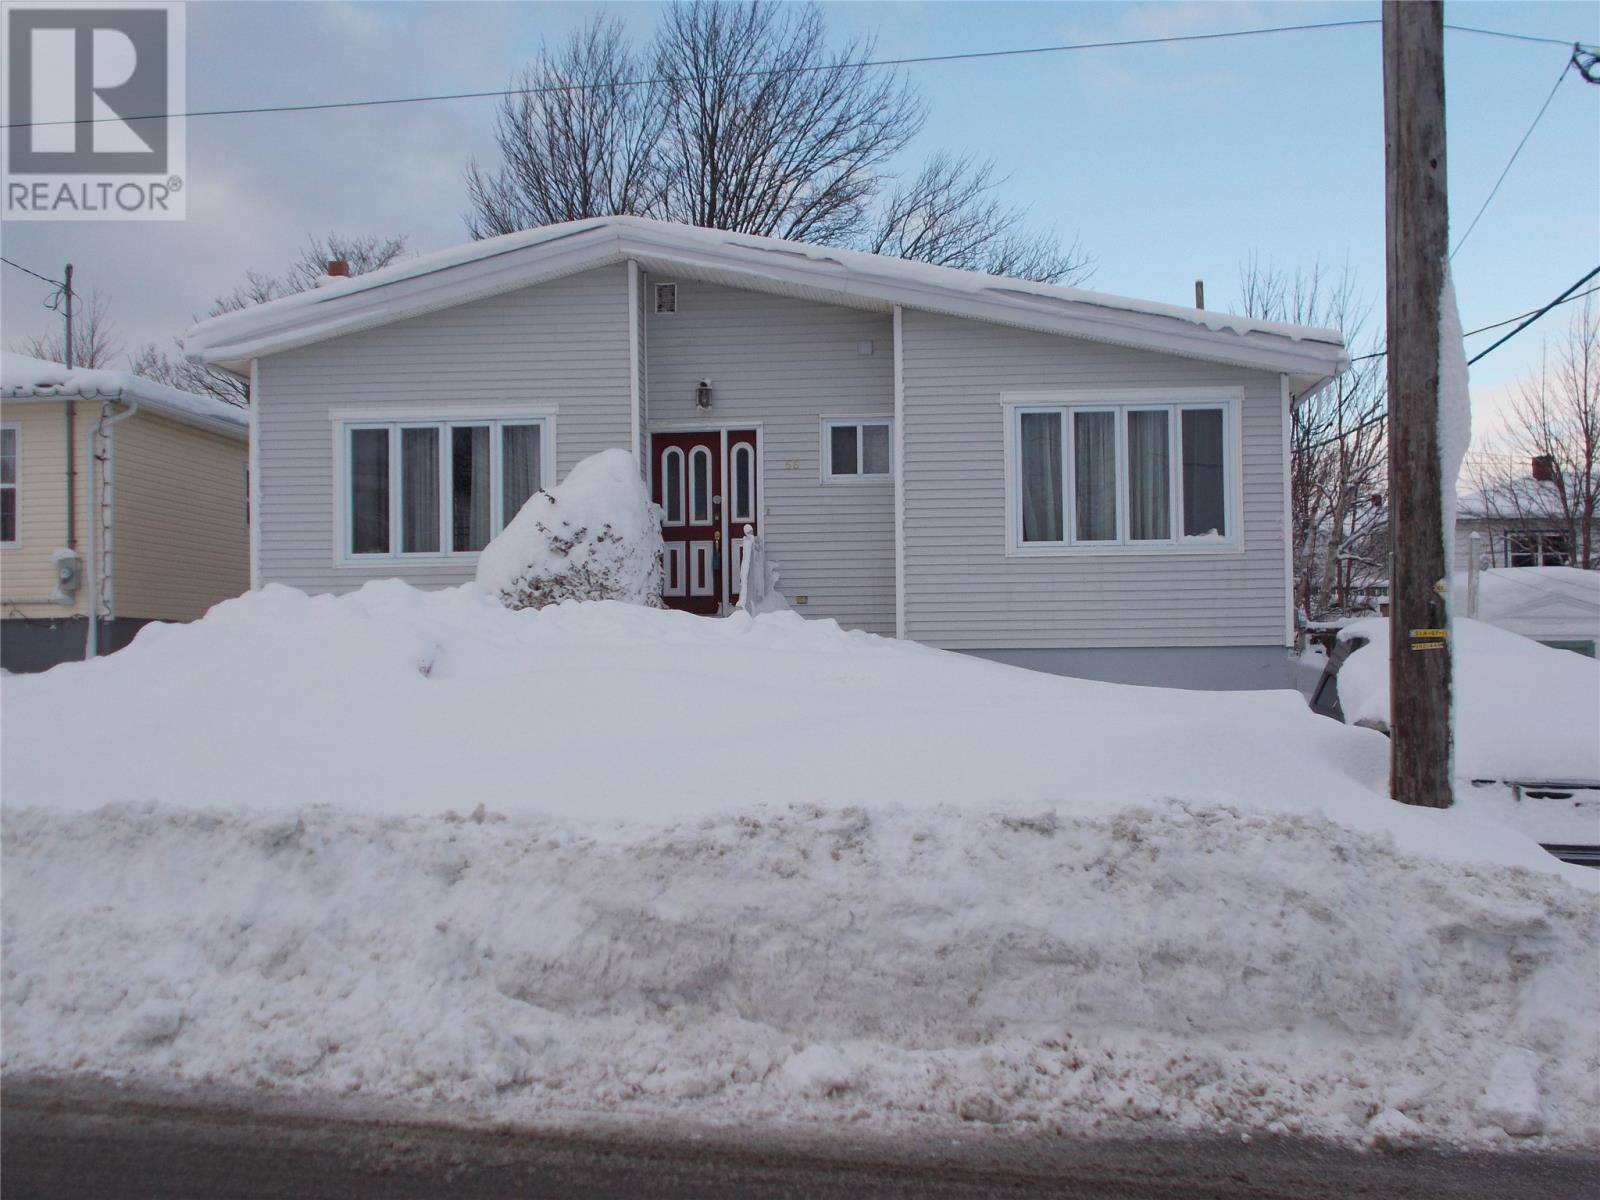 House for sale at 56 Wishingwell Rd St. John's Newfoundland - MLS: 1207314